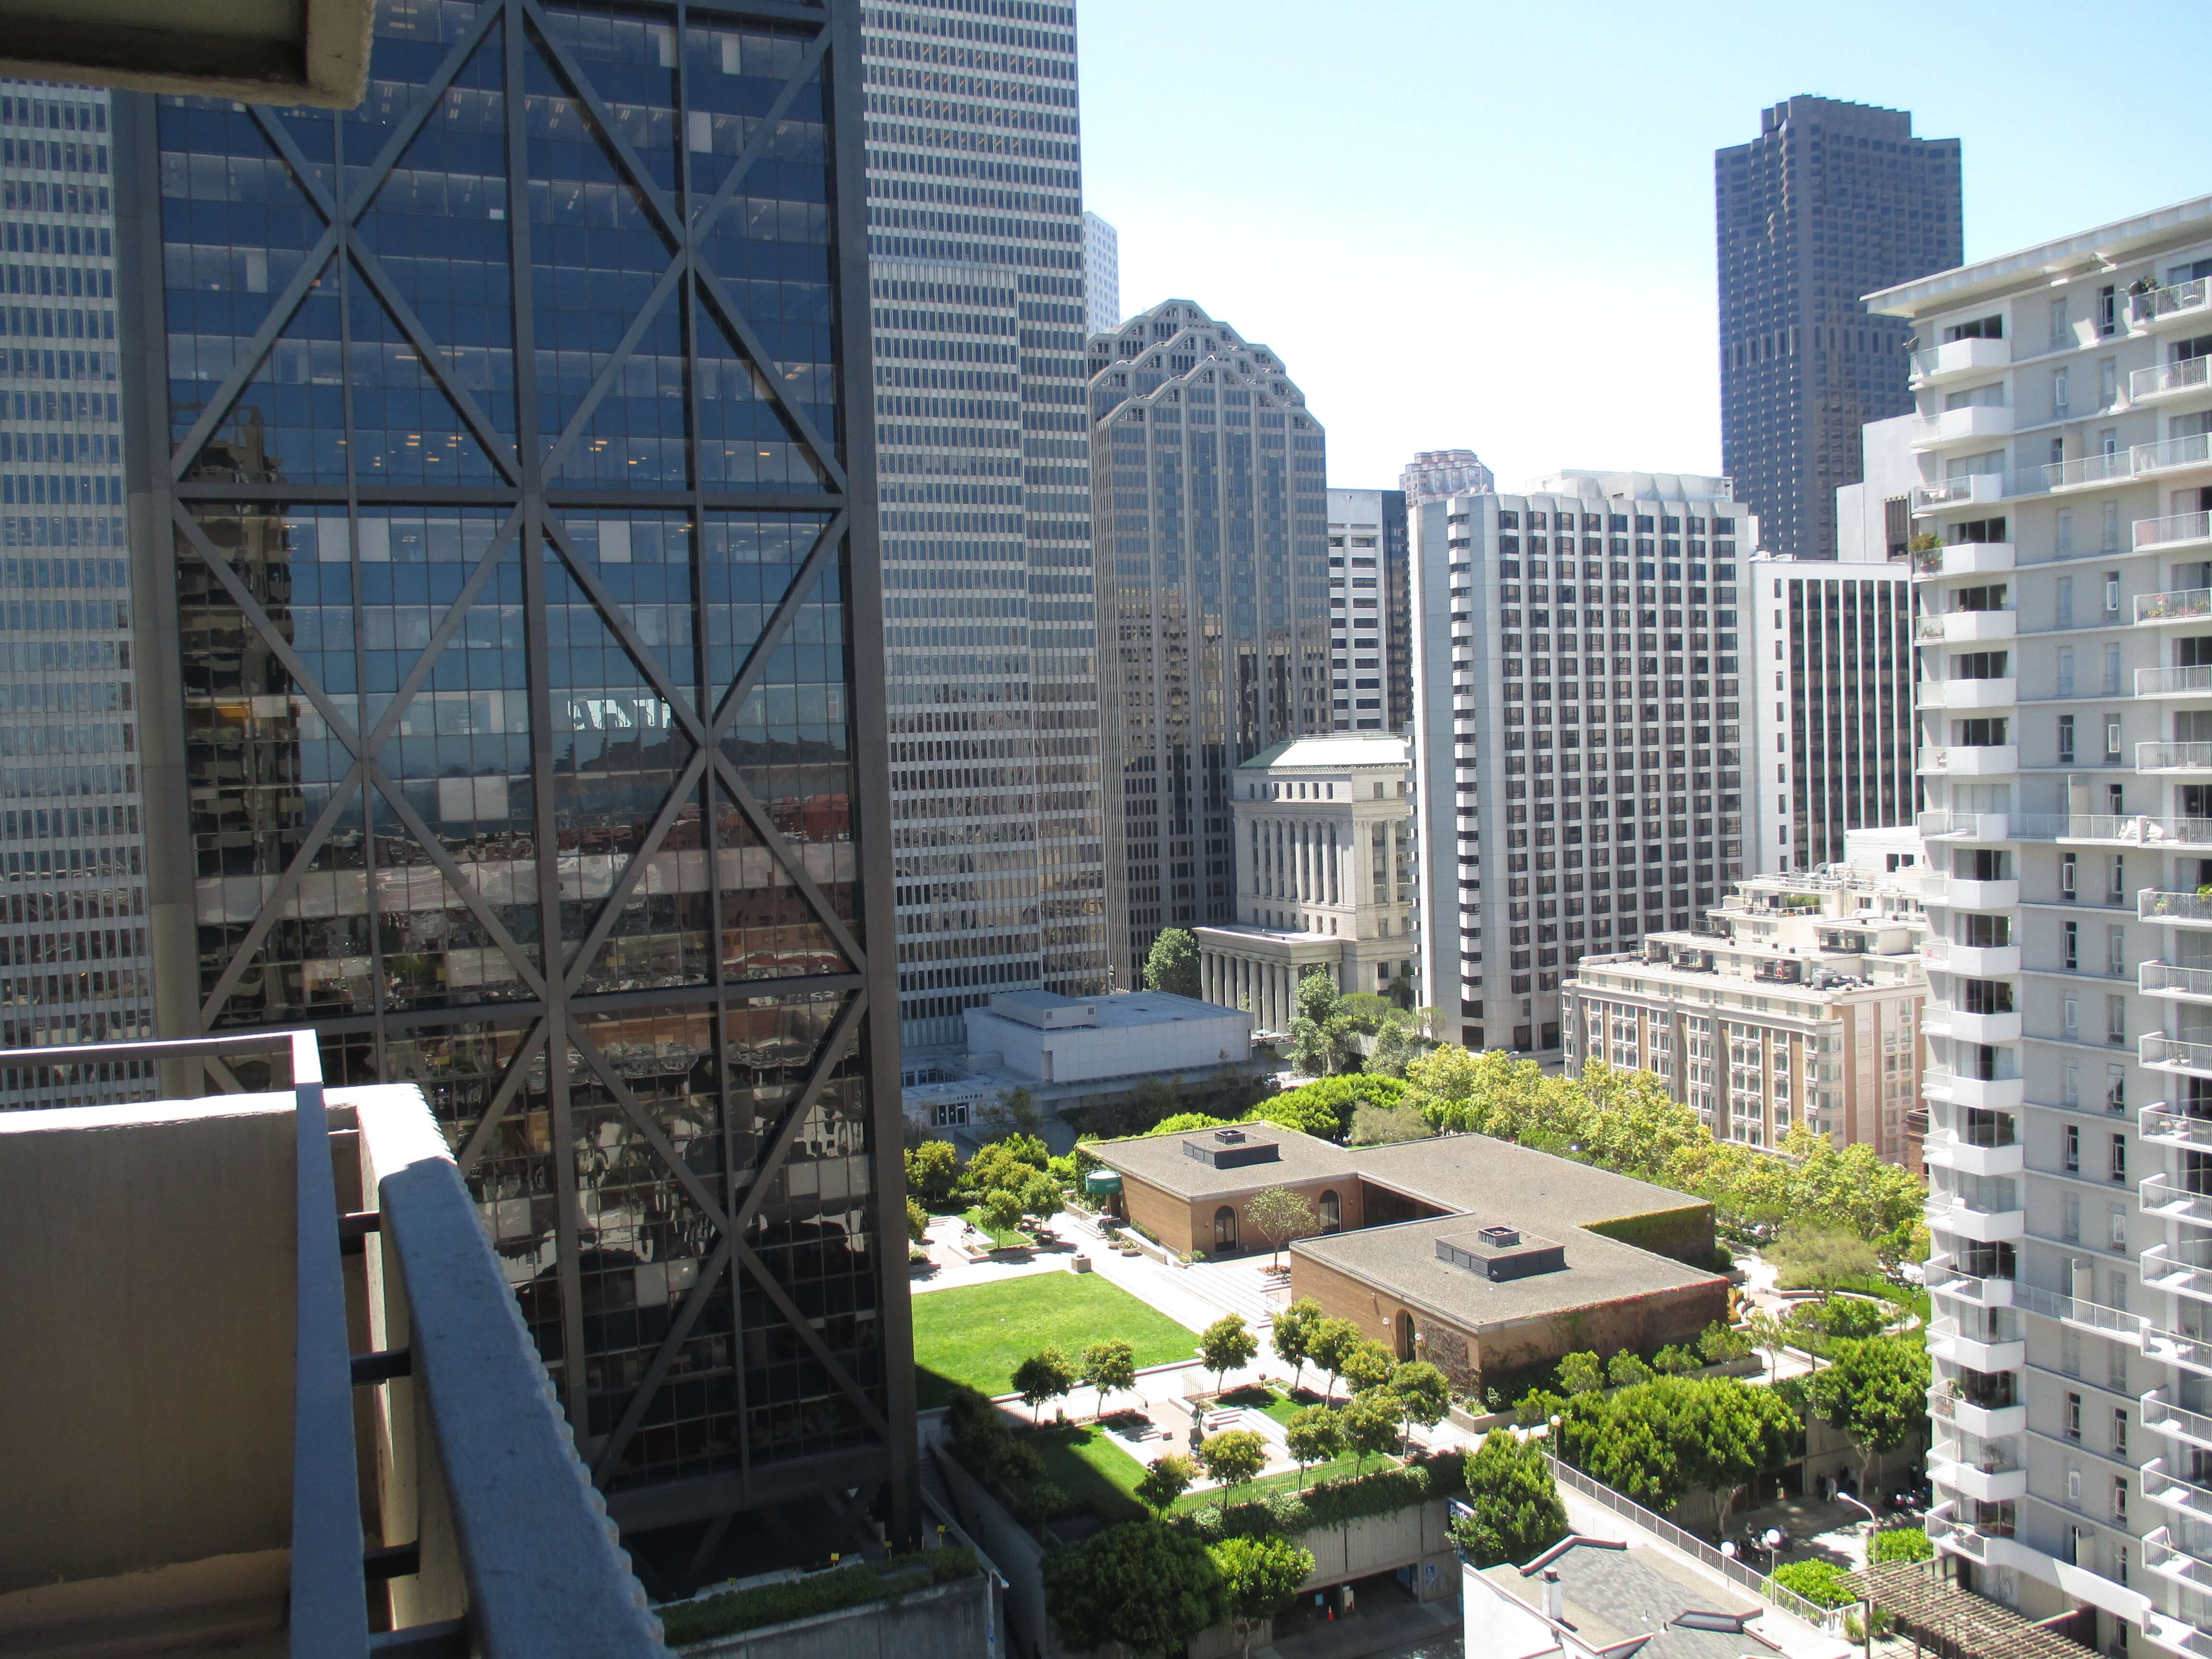 Marina district furnished 1 bedroom apartment for rent - San francisco one bedroom apartment ...